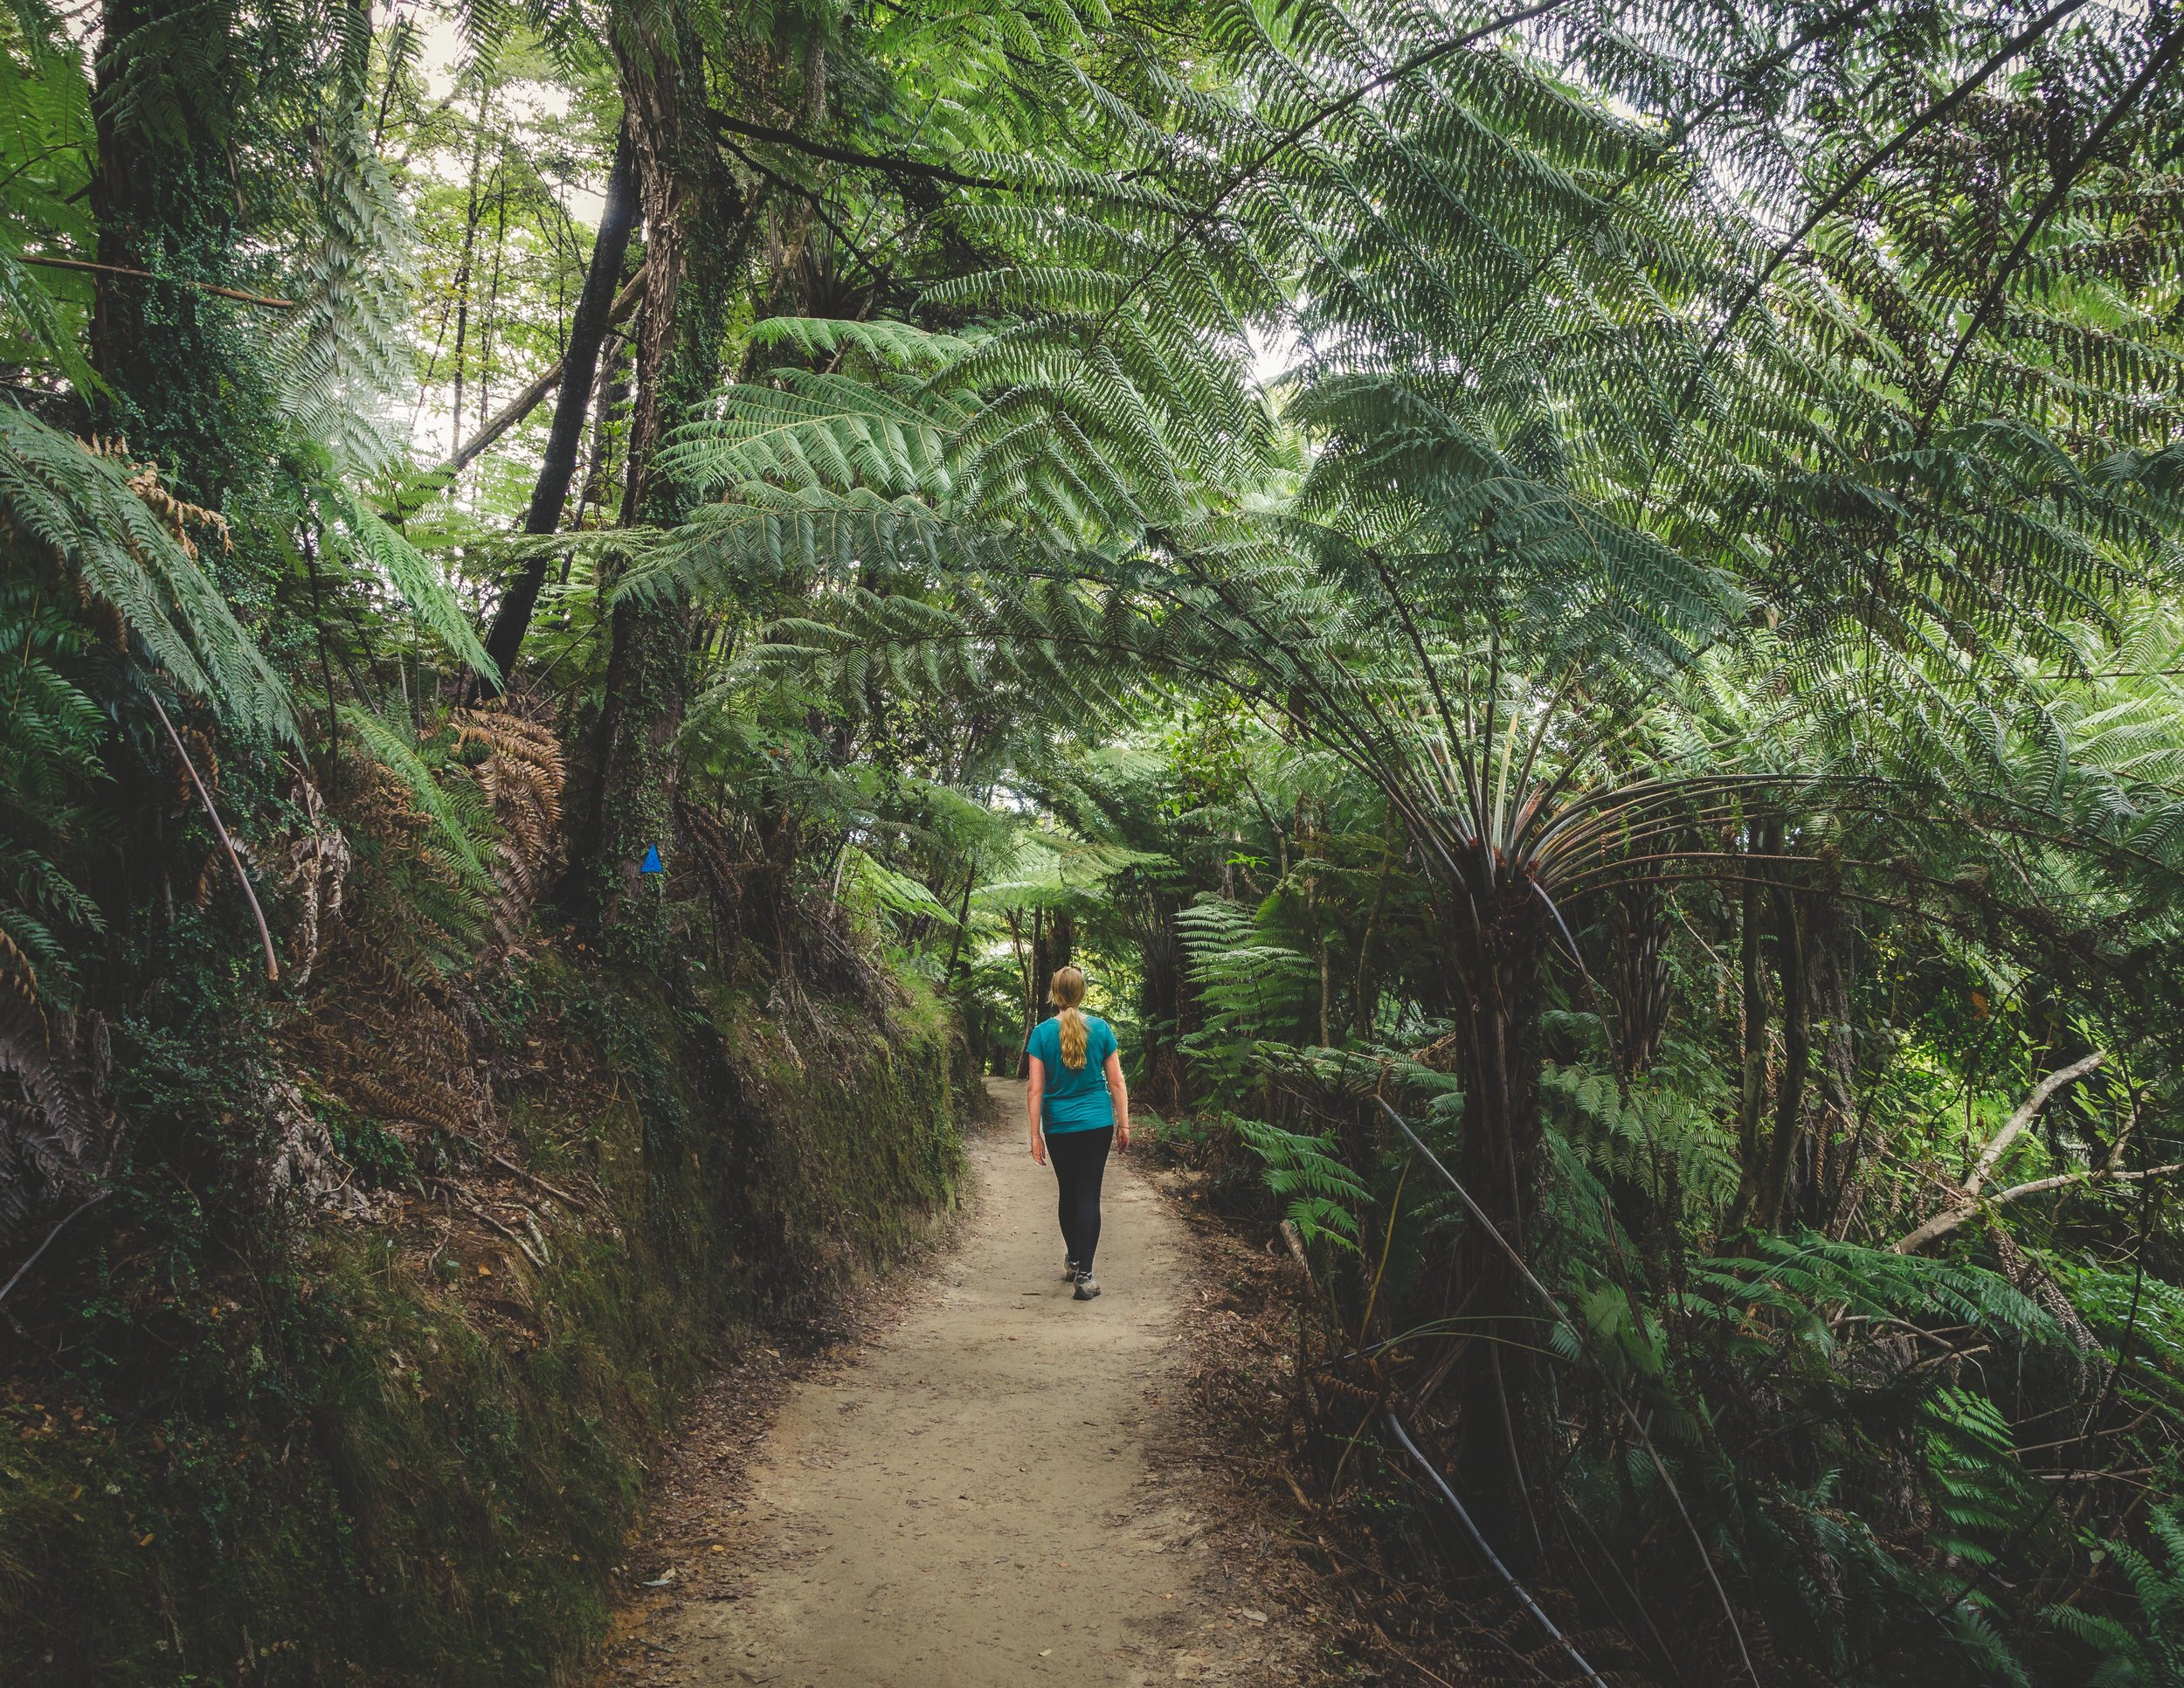 So many amazing tree ferns on this track